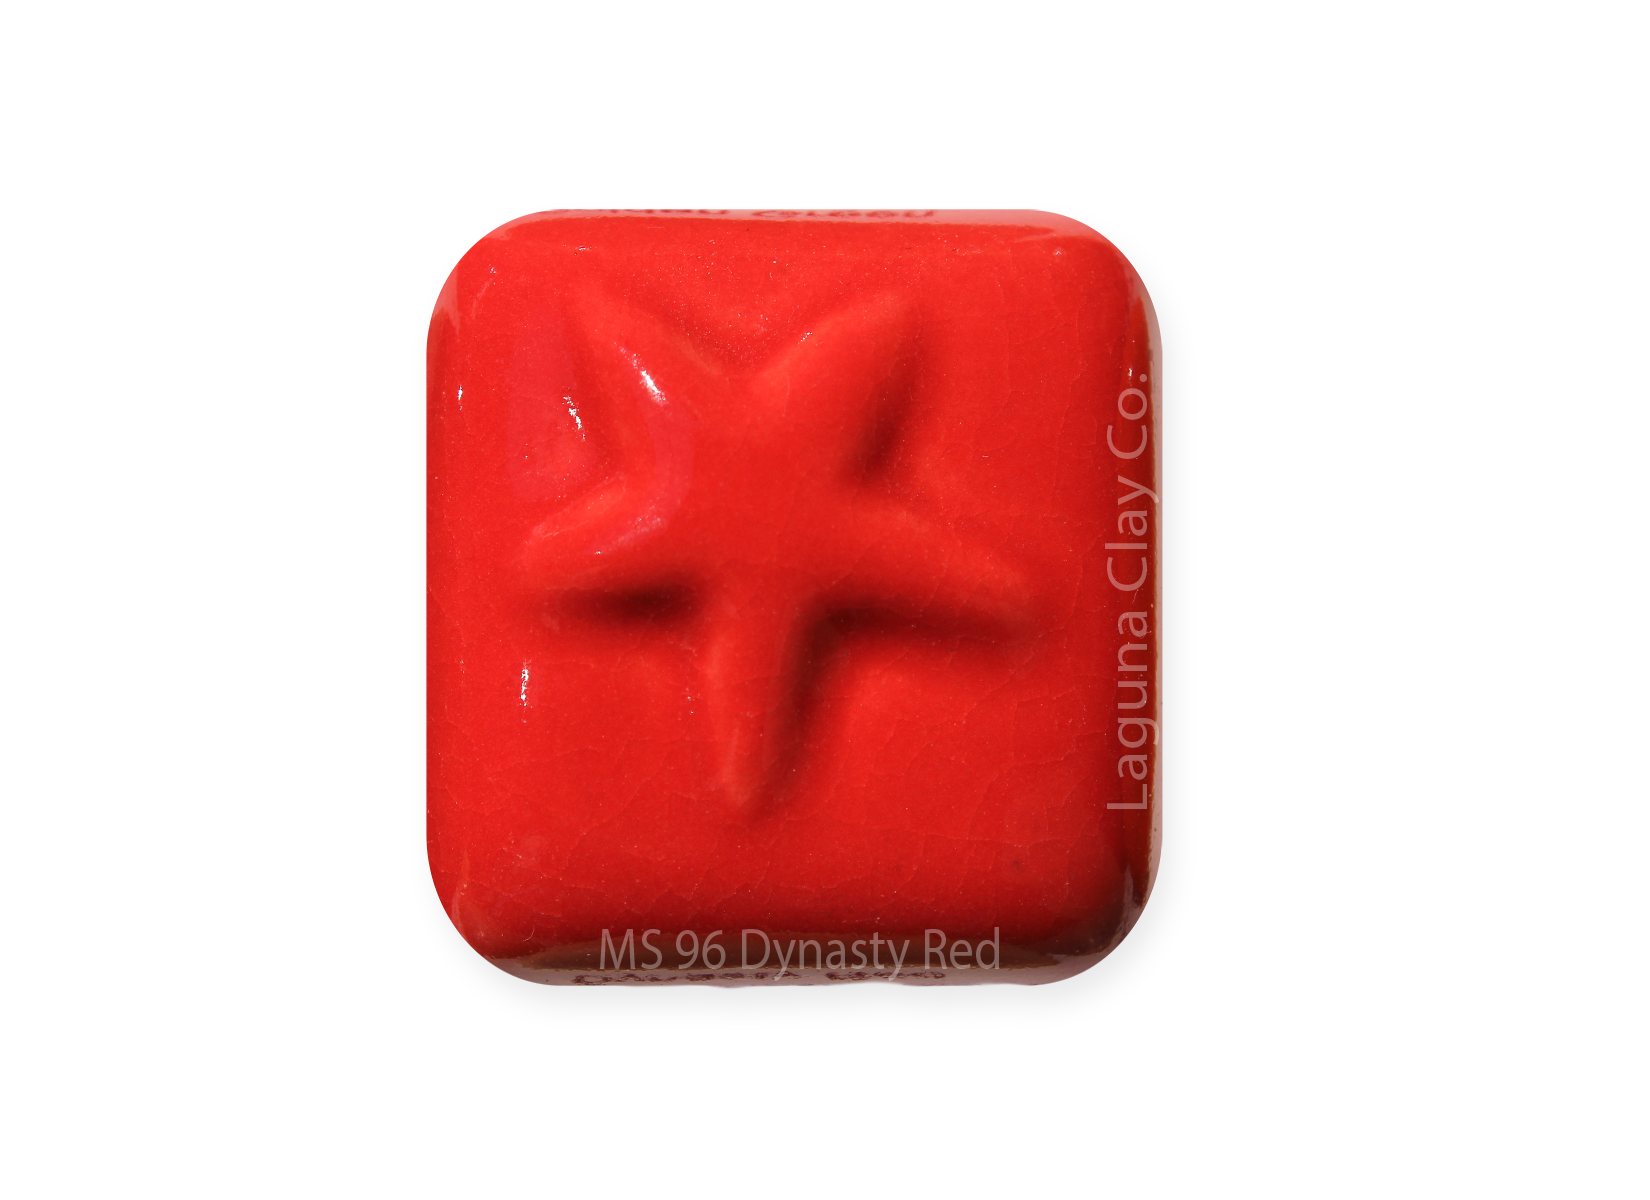 MS-96 Dynasty Red